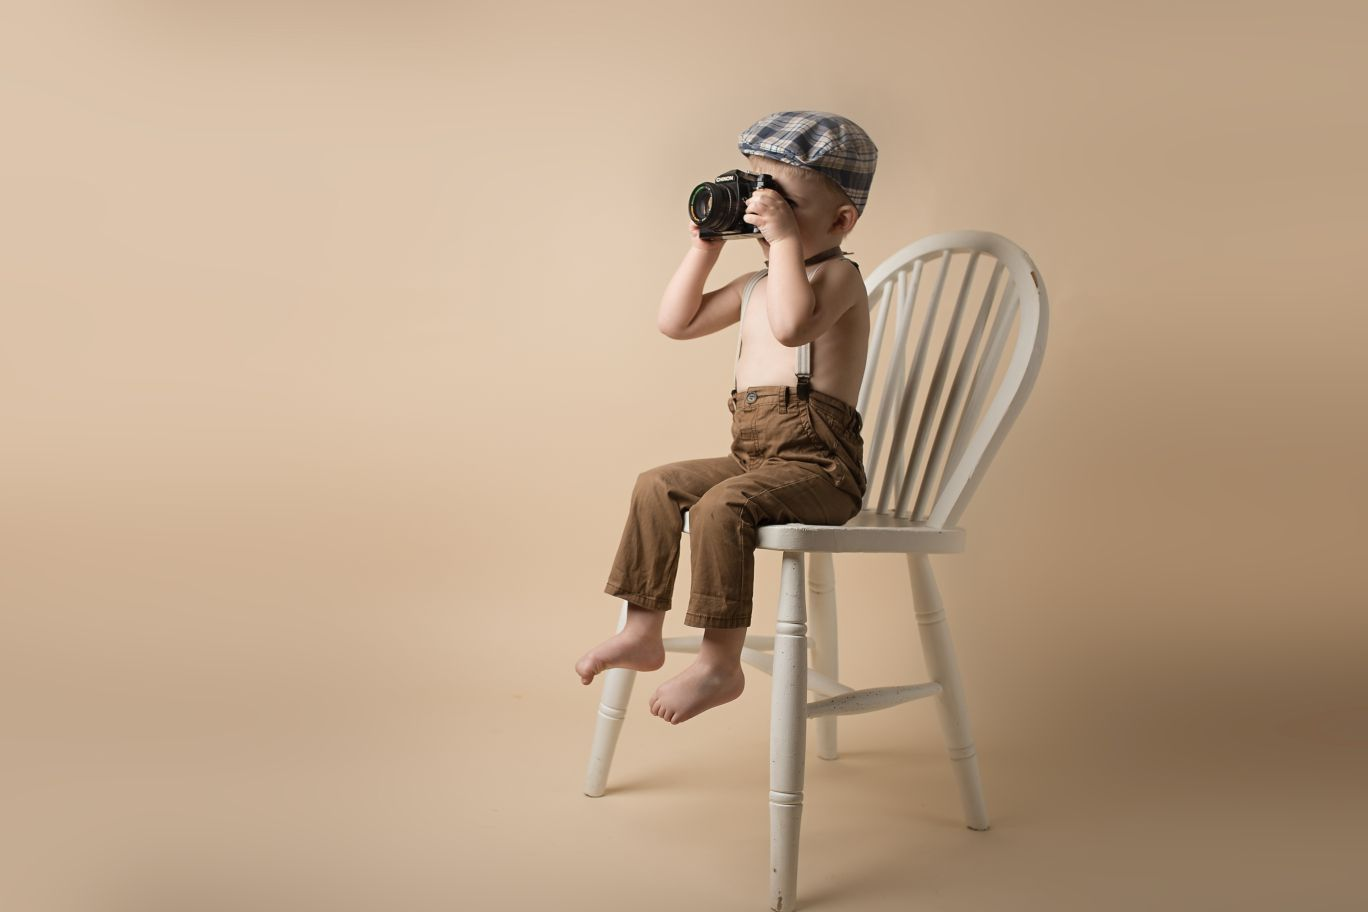 reasonably priced photographer exeter